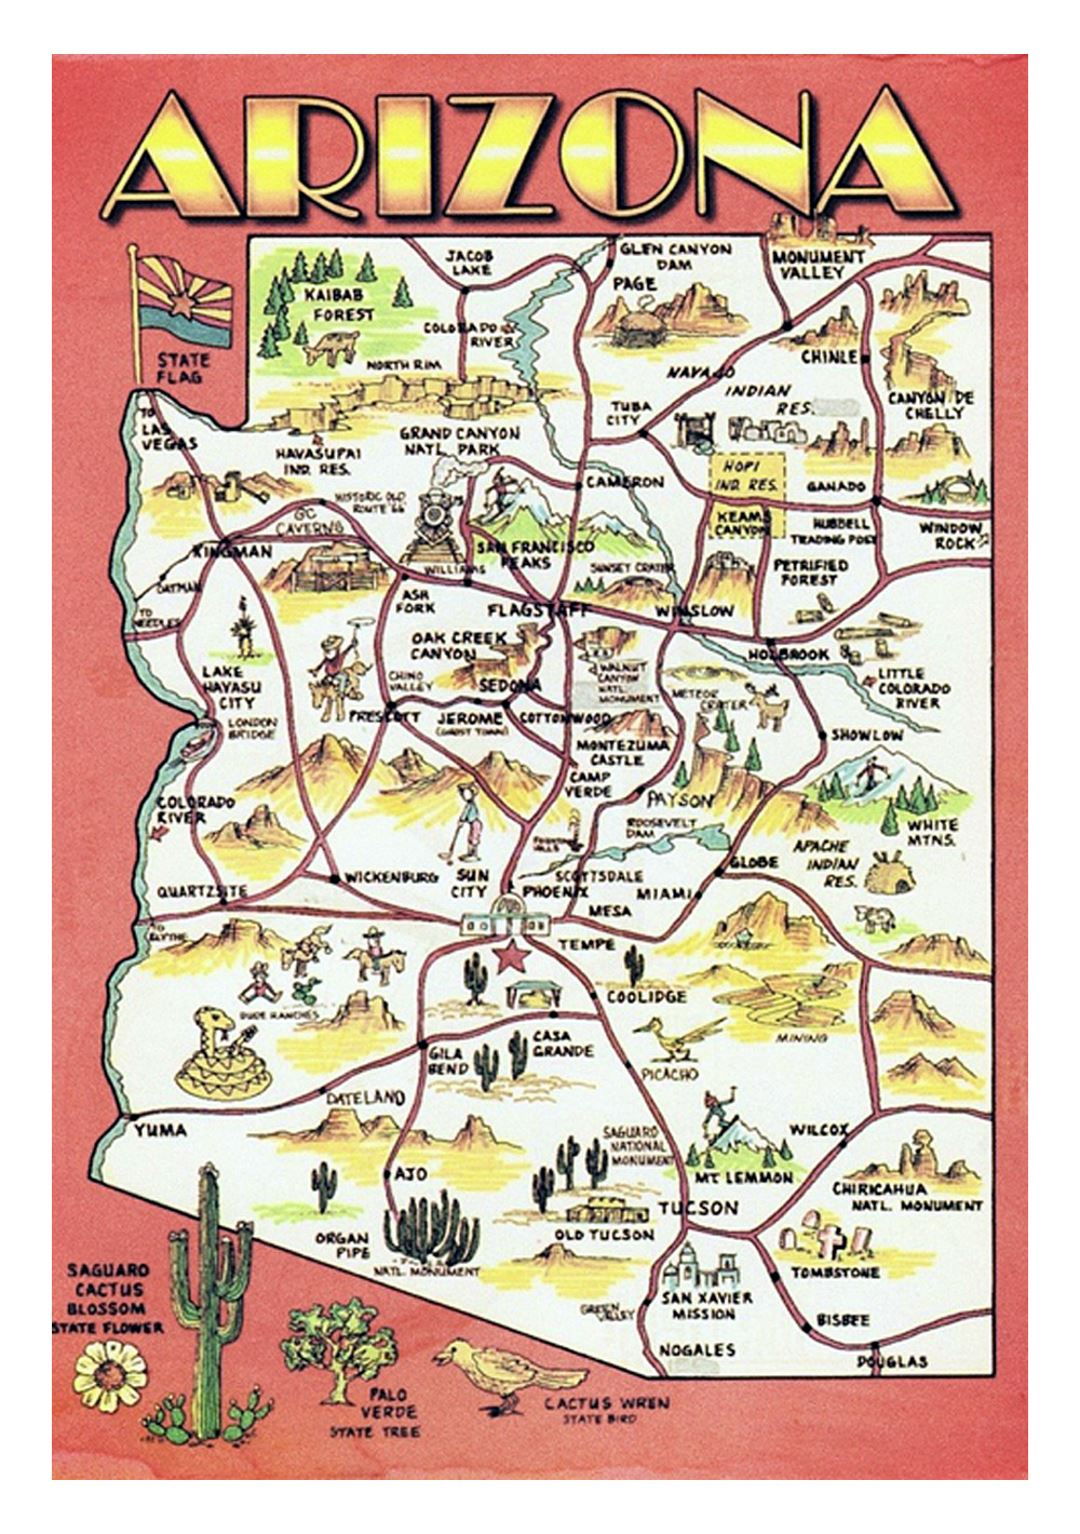 Travel Map Of Arizona Detailed travel illustrated map of Arizona state | Arizona state